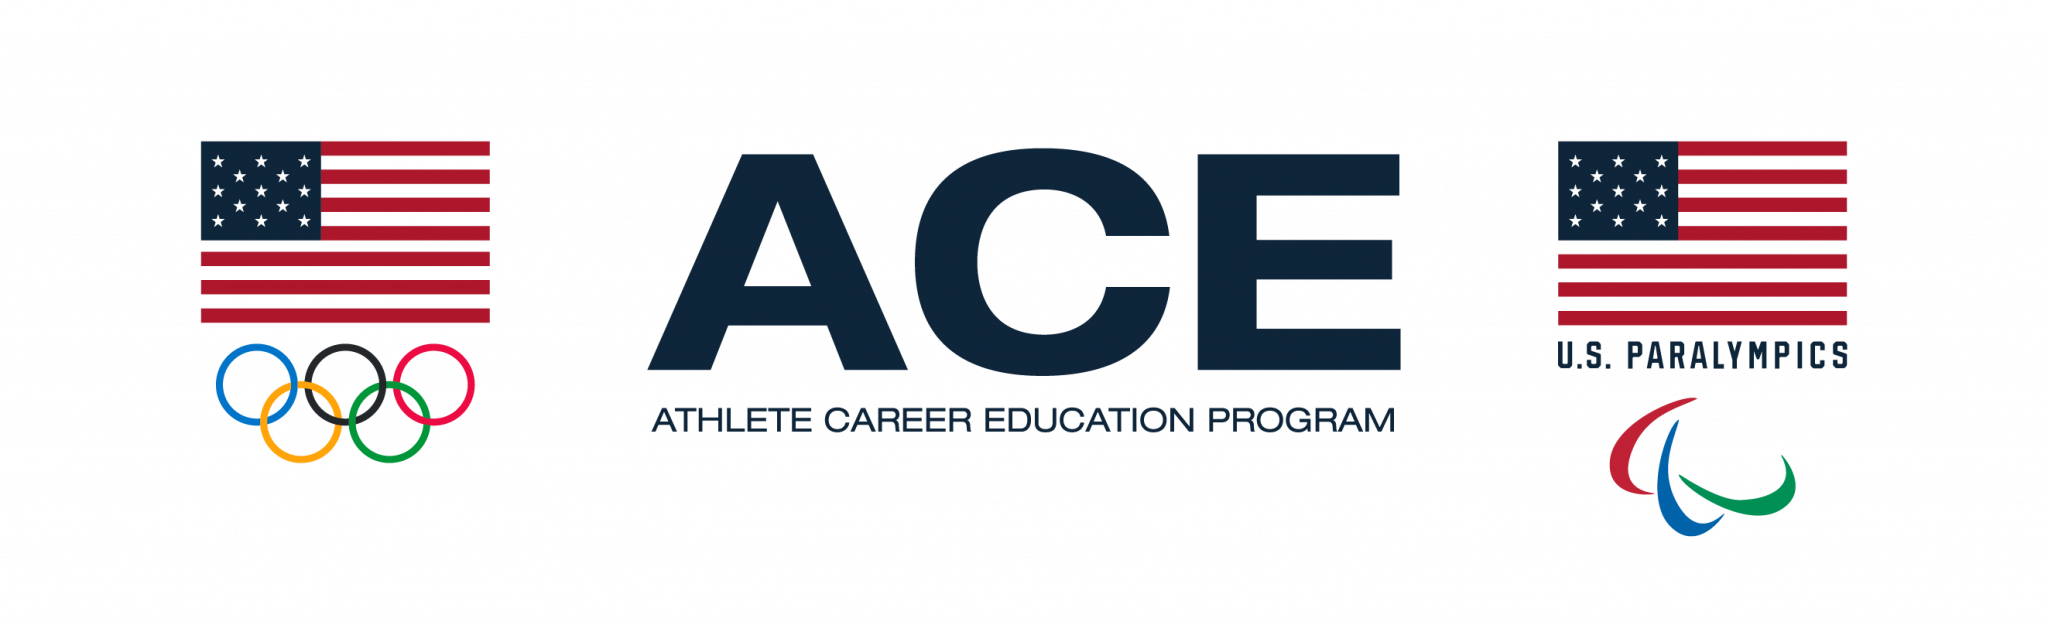 USOC's Athlete Career and Education Programme awards sizeable athlete tuition grants